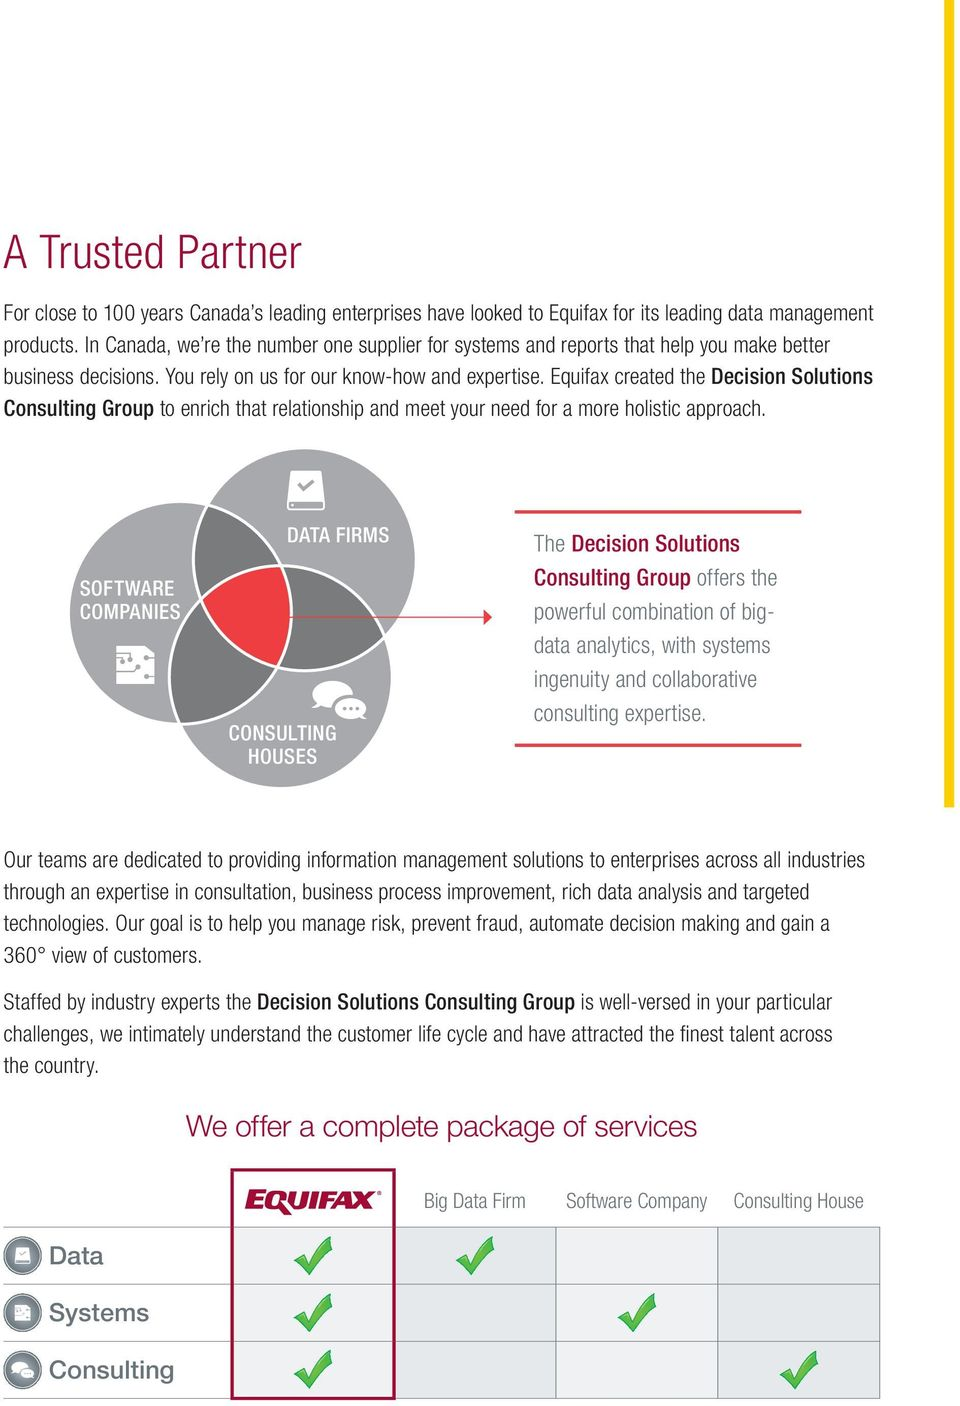 Equifax created the Decision Solutions Consulting Group to enrich that relationship and meet your need for a more holistic approach.